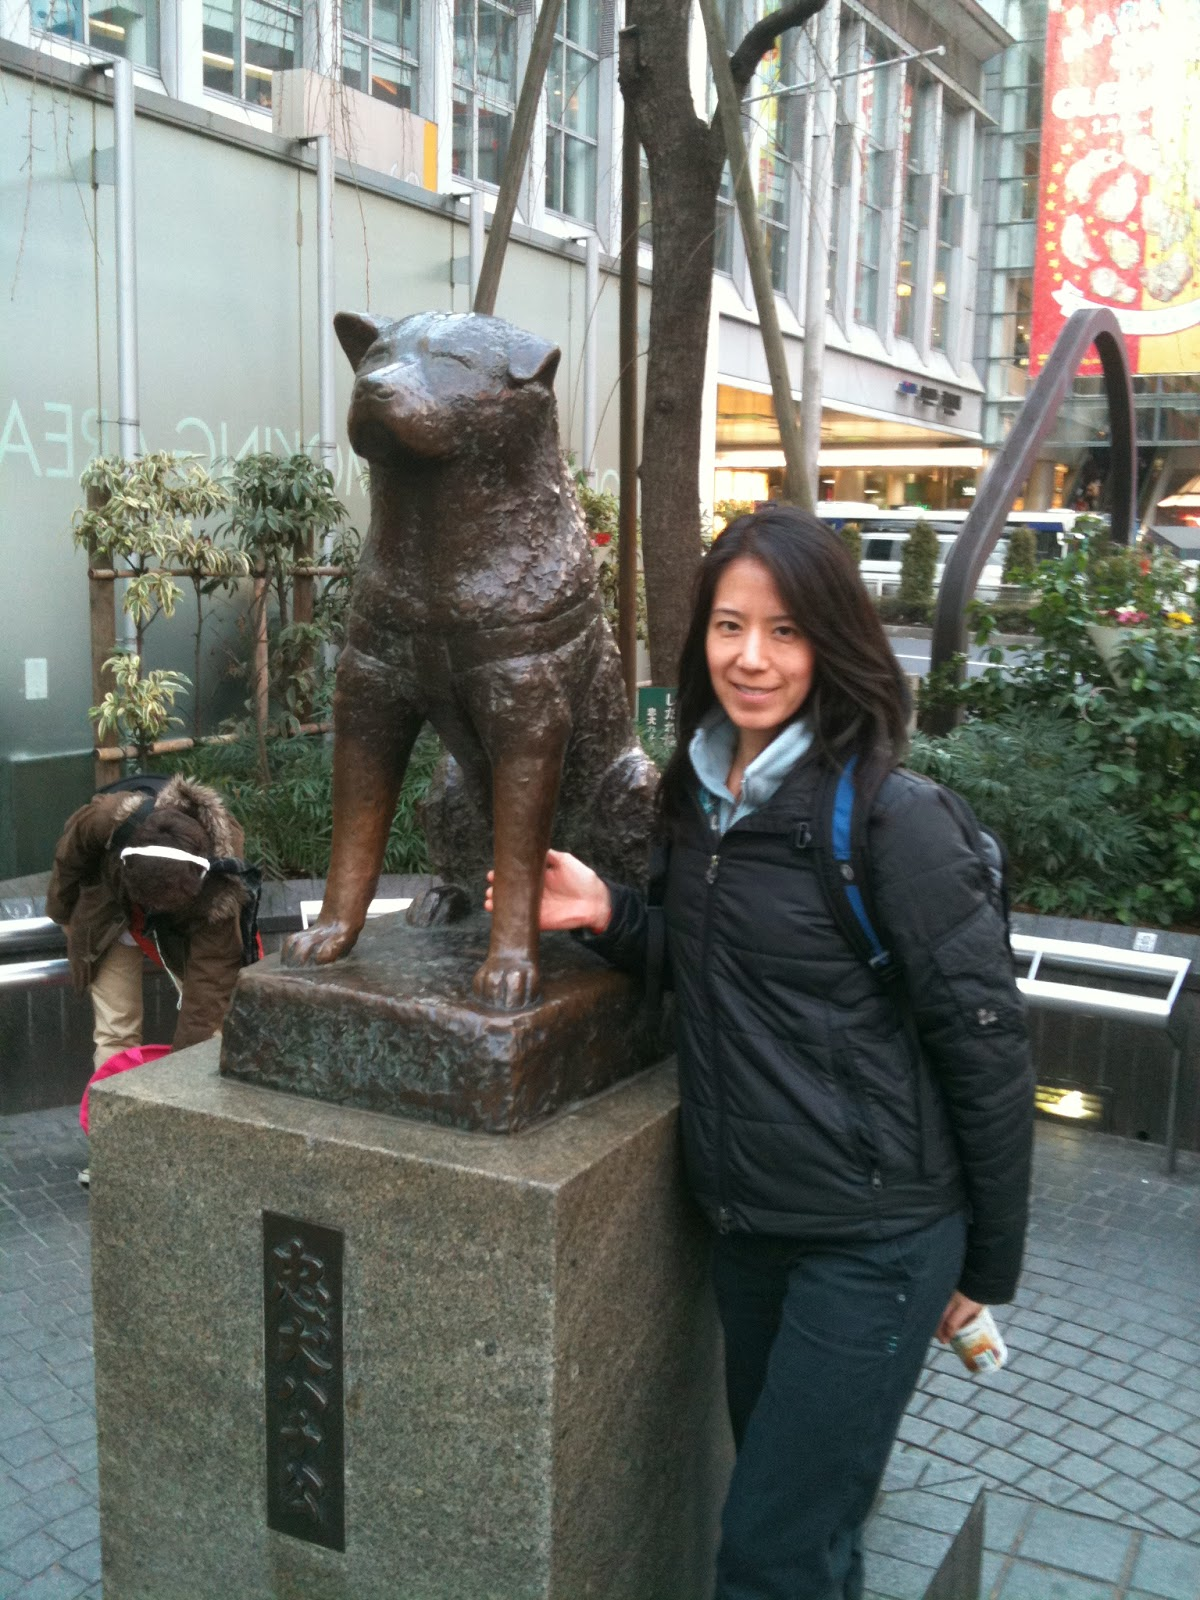 Tokyo - Any dog lover wants to pose with the statue of Hachiko